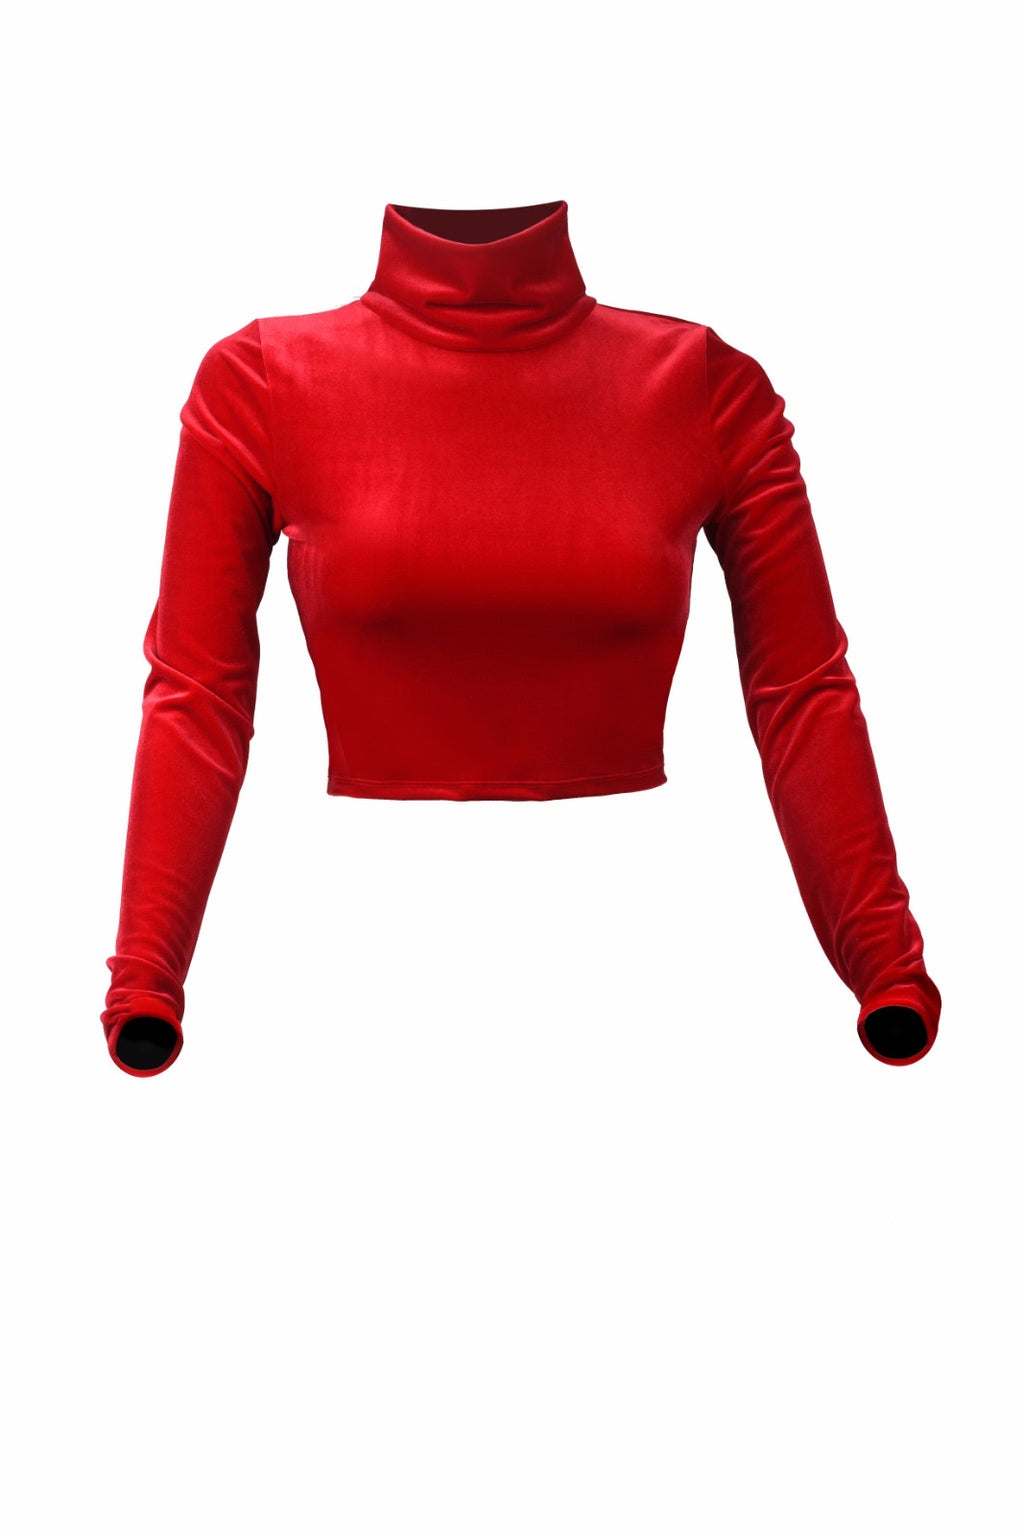 HUG ME TIGHT TOP - RED